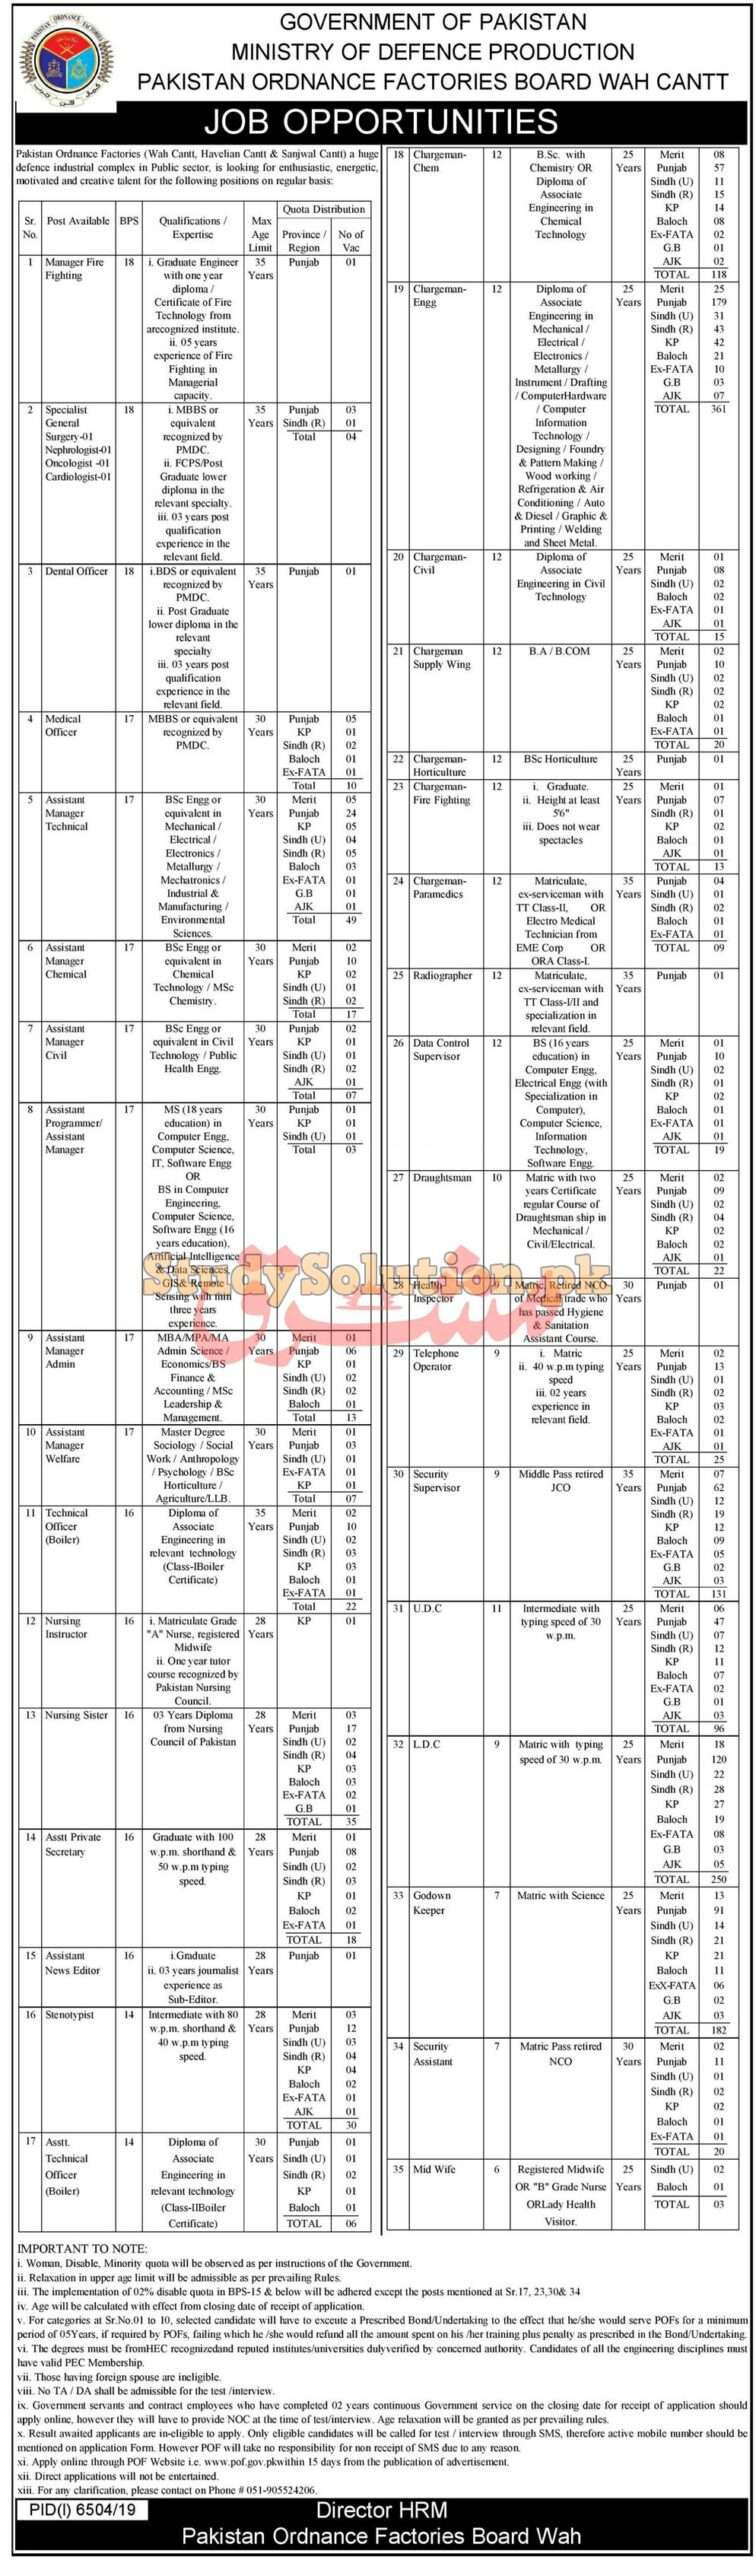 Govt Of Pakistan Ministry of Defence Production Jobs 2020